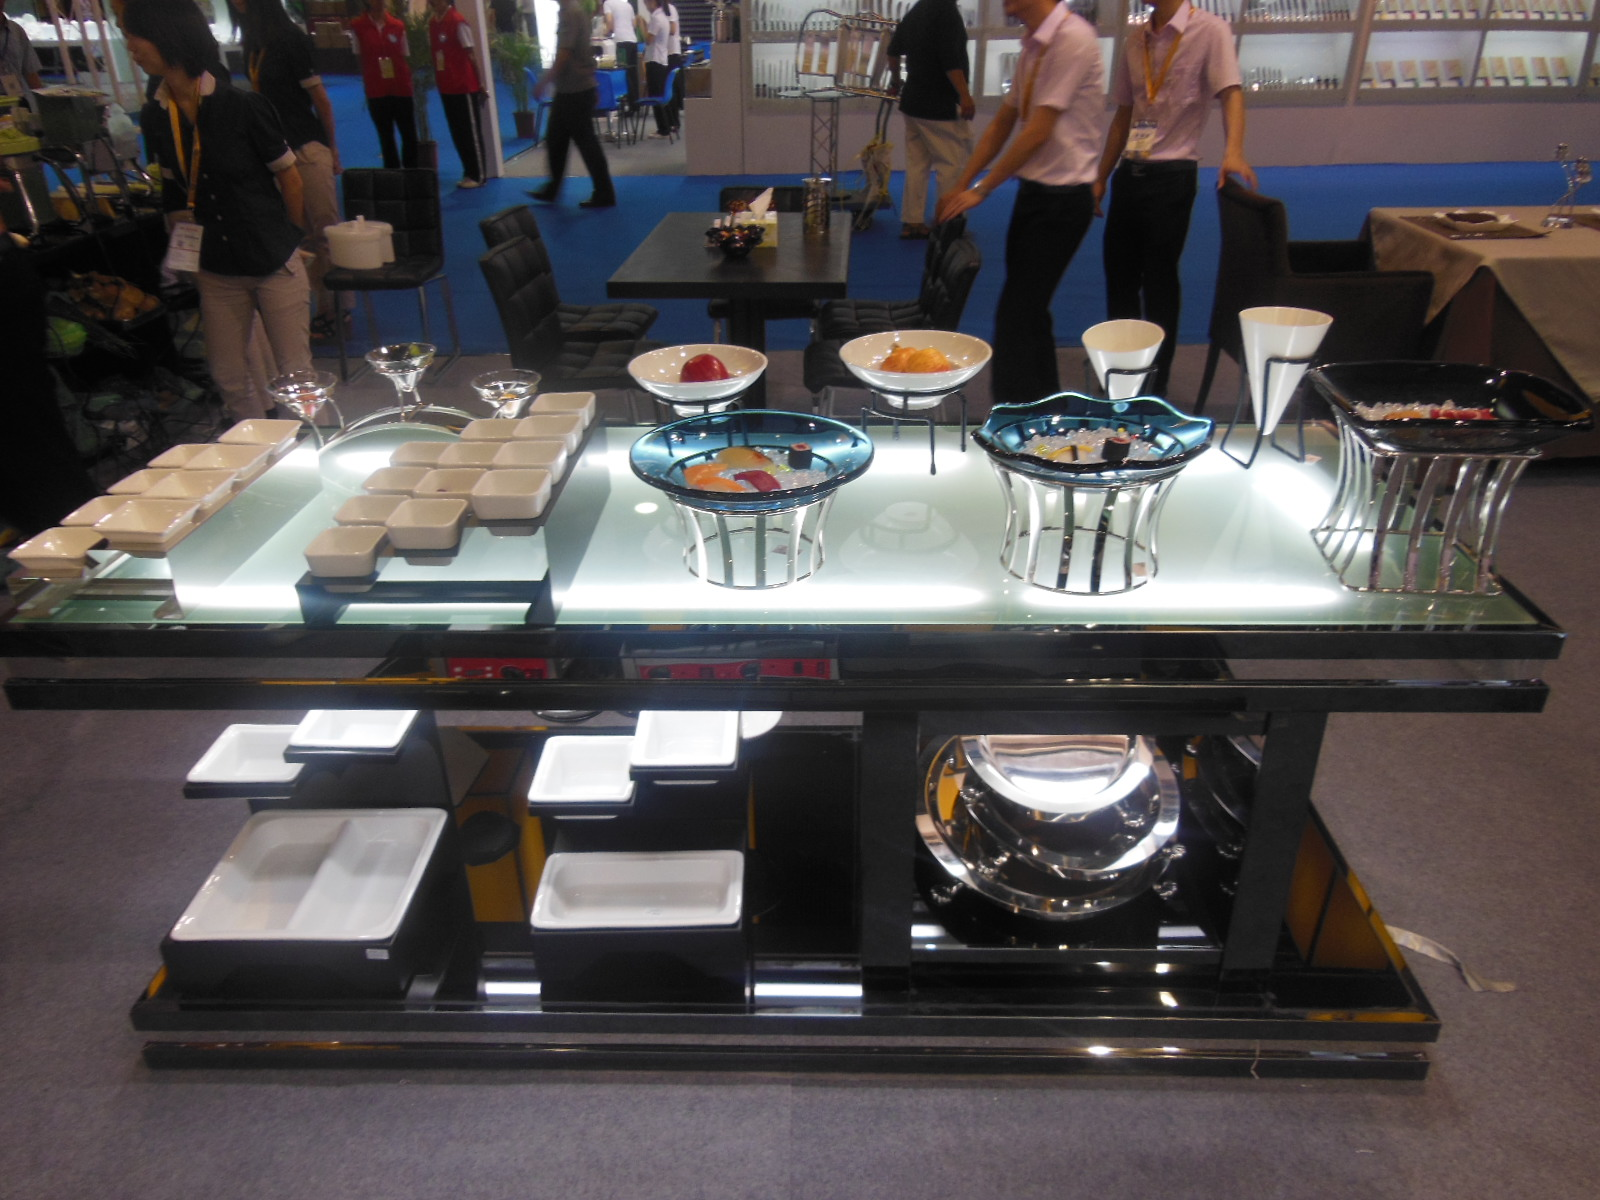 Guangzhou pazhou exhibition-Tontile Buffet products 2